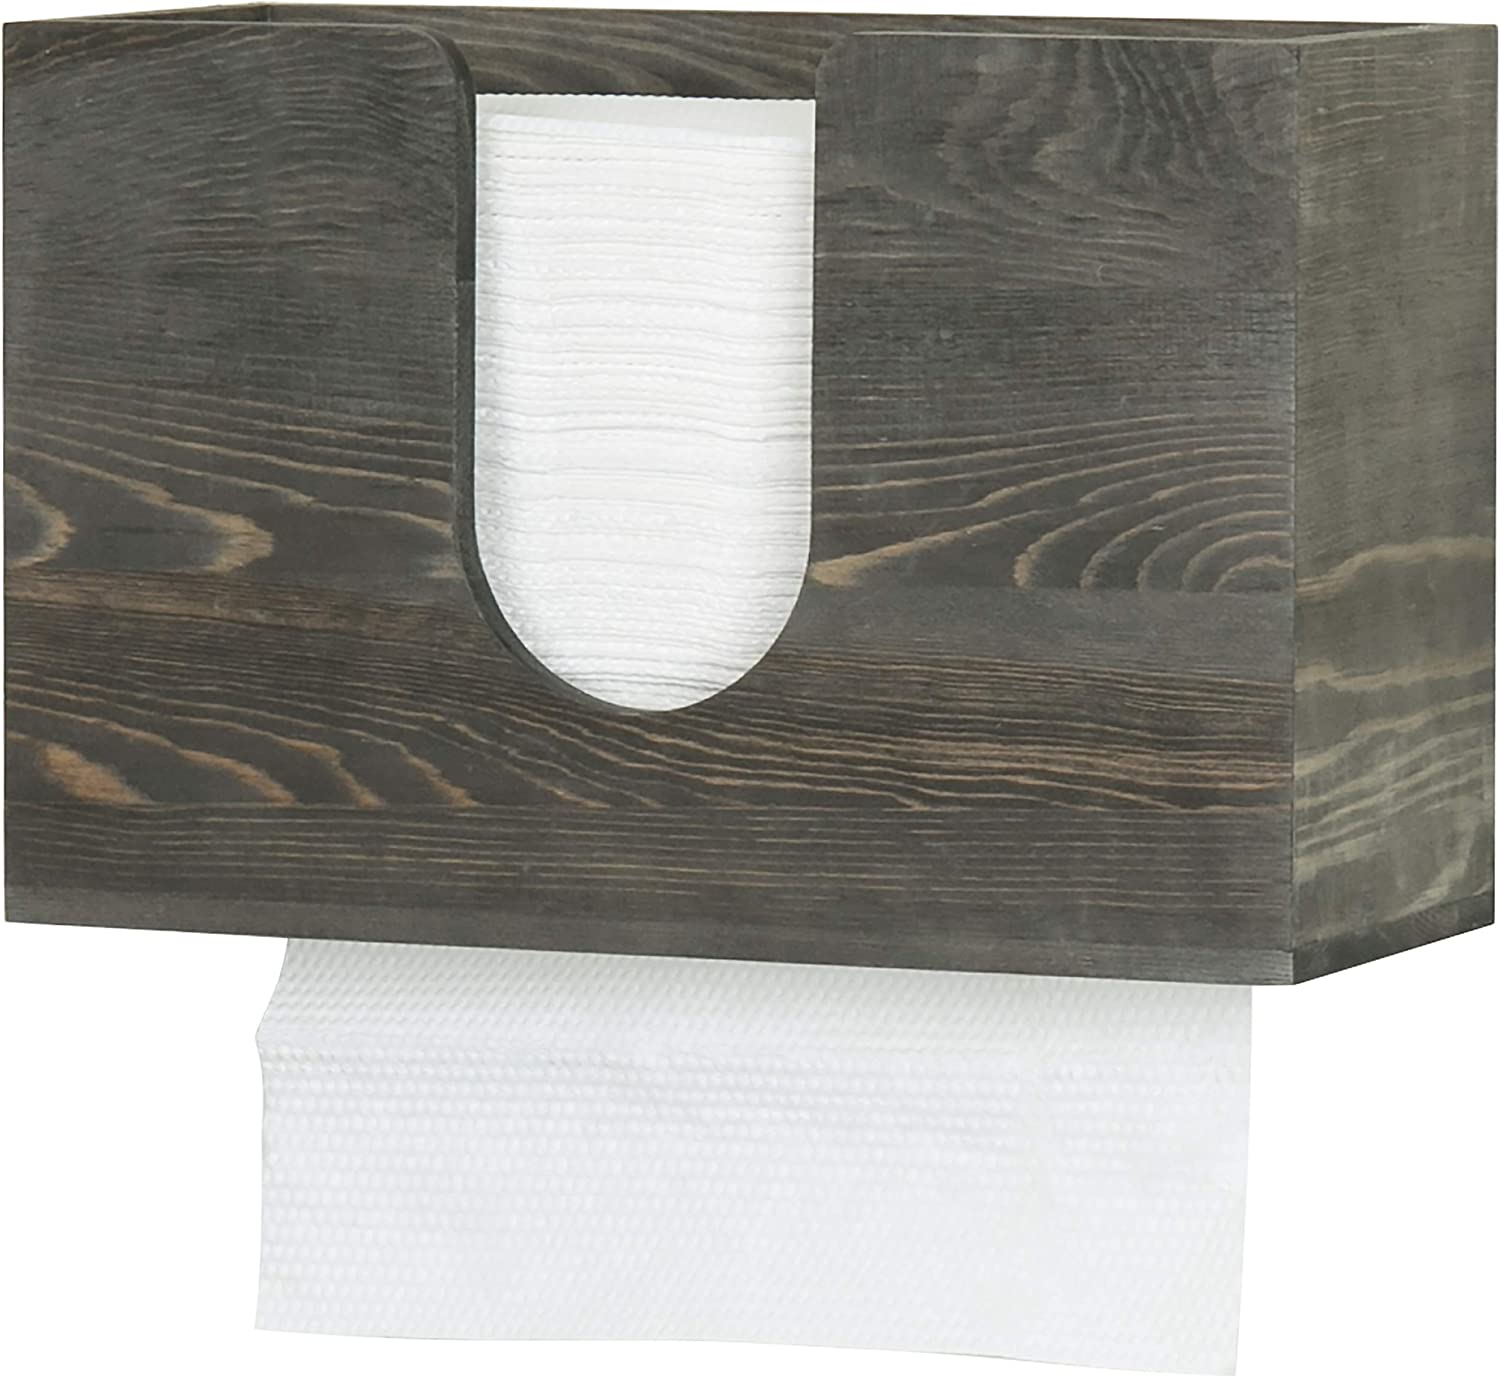 MyGift Colorado Miami Mall Springs Mall Vintage Gray Wood Multifold C Pape Fold Z Trifold